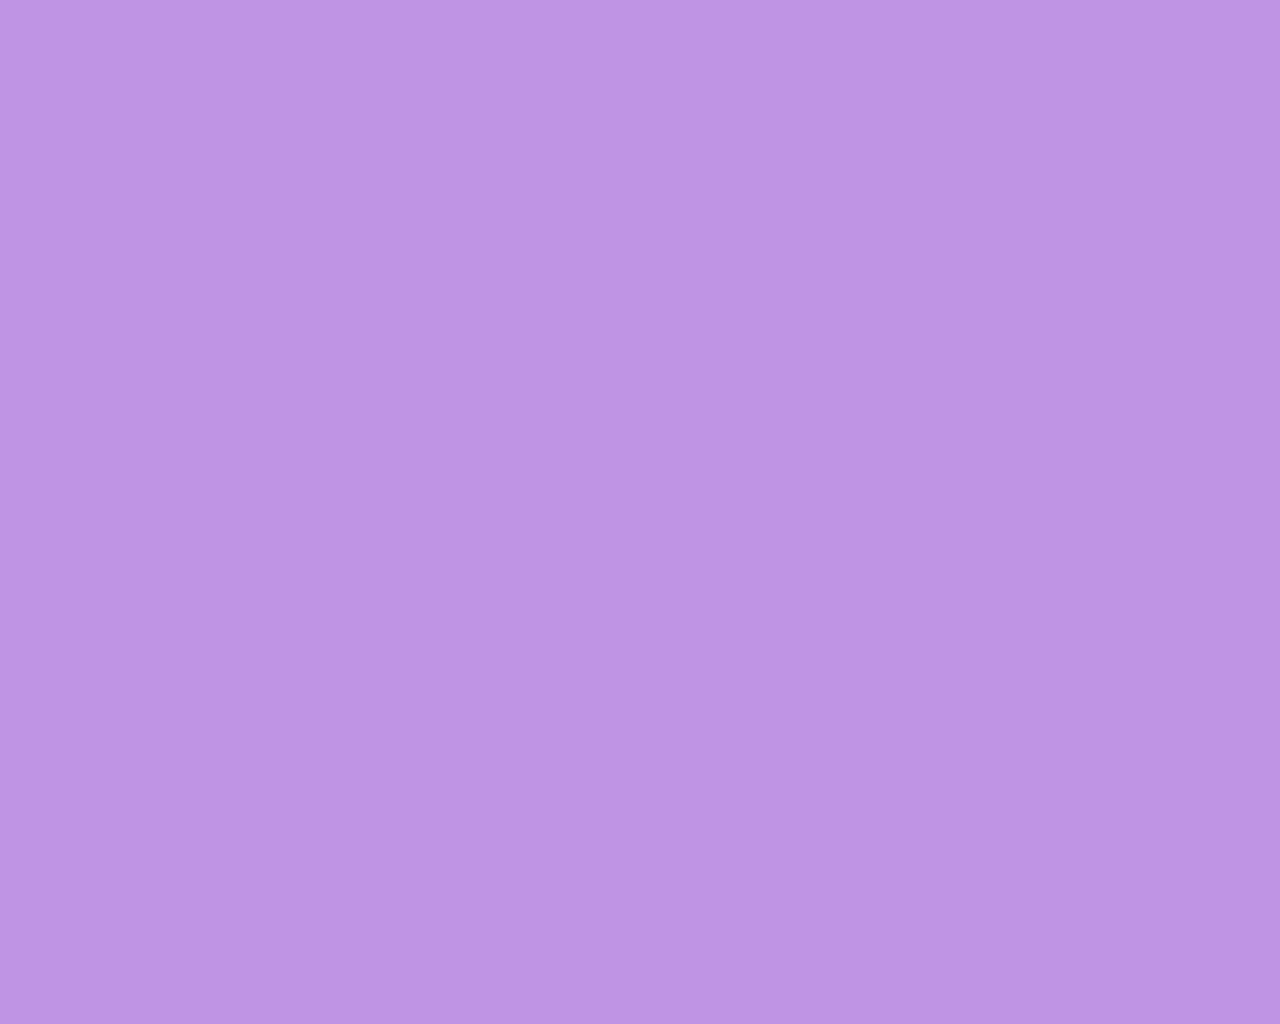 Lavender Background wallpaper | 1280x1024 | #23181